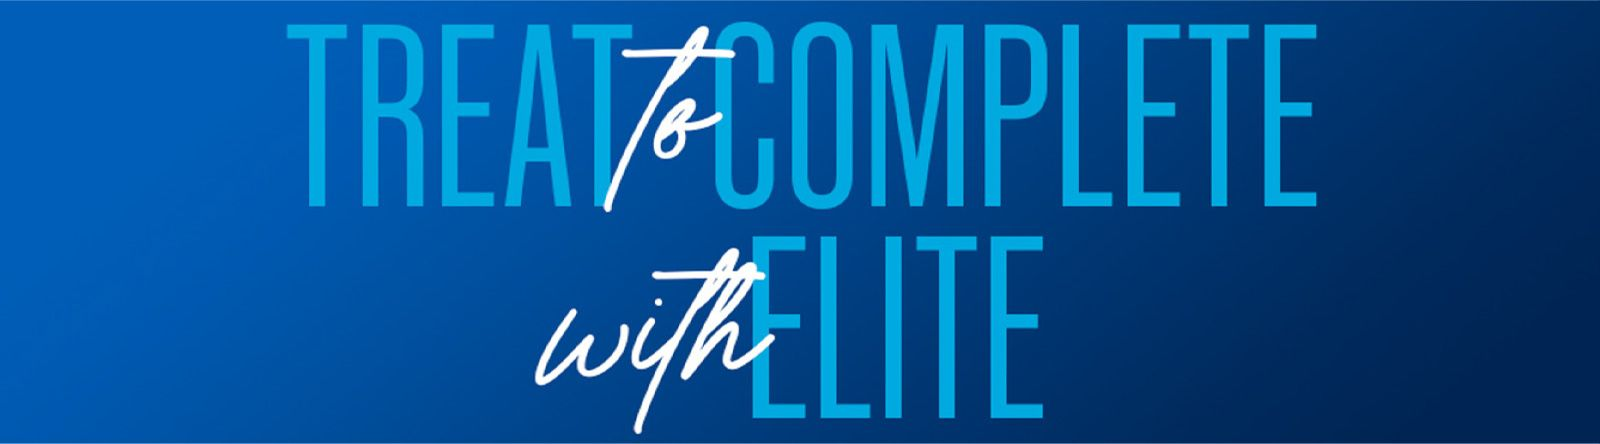 CoolSculpting_Treat-to-Complete-with-ELITE